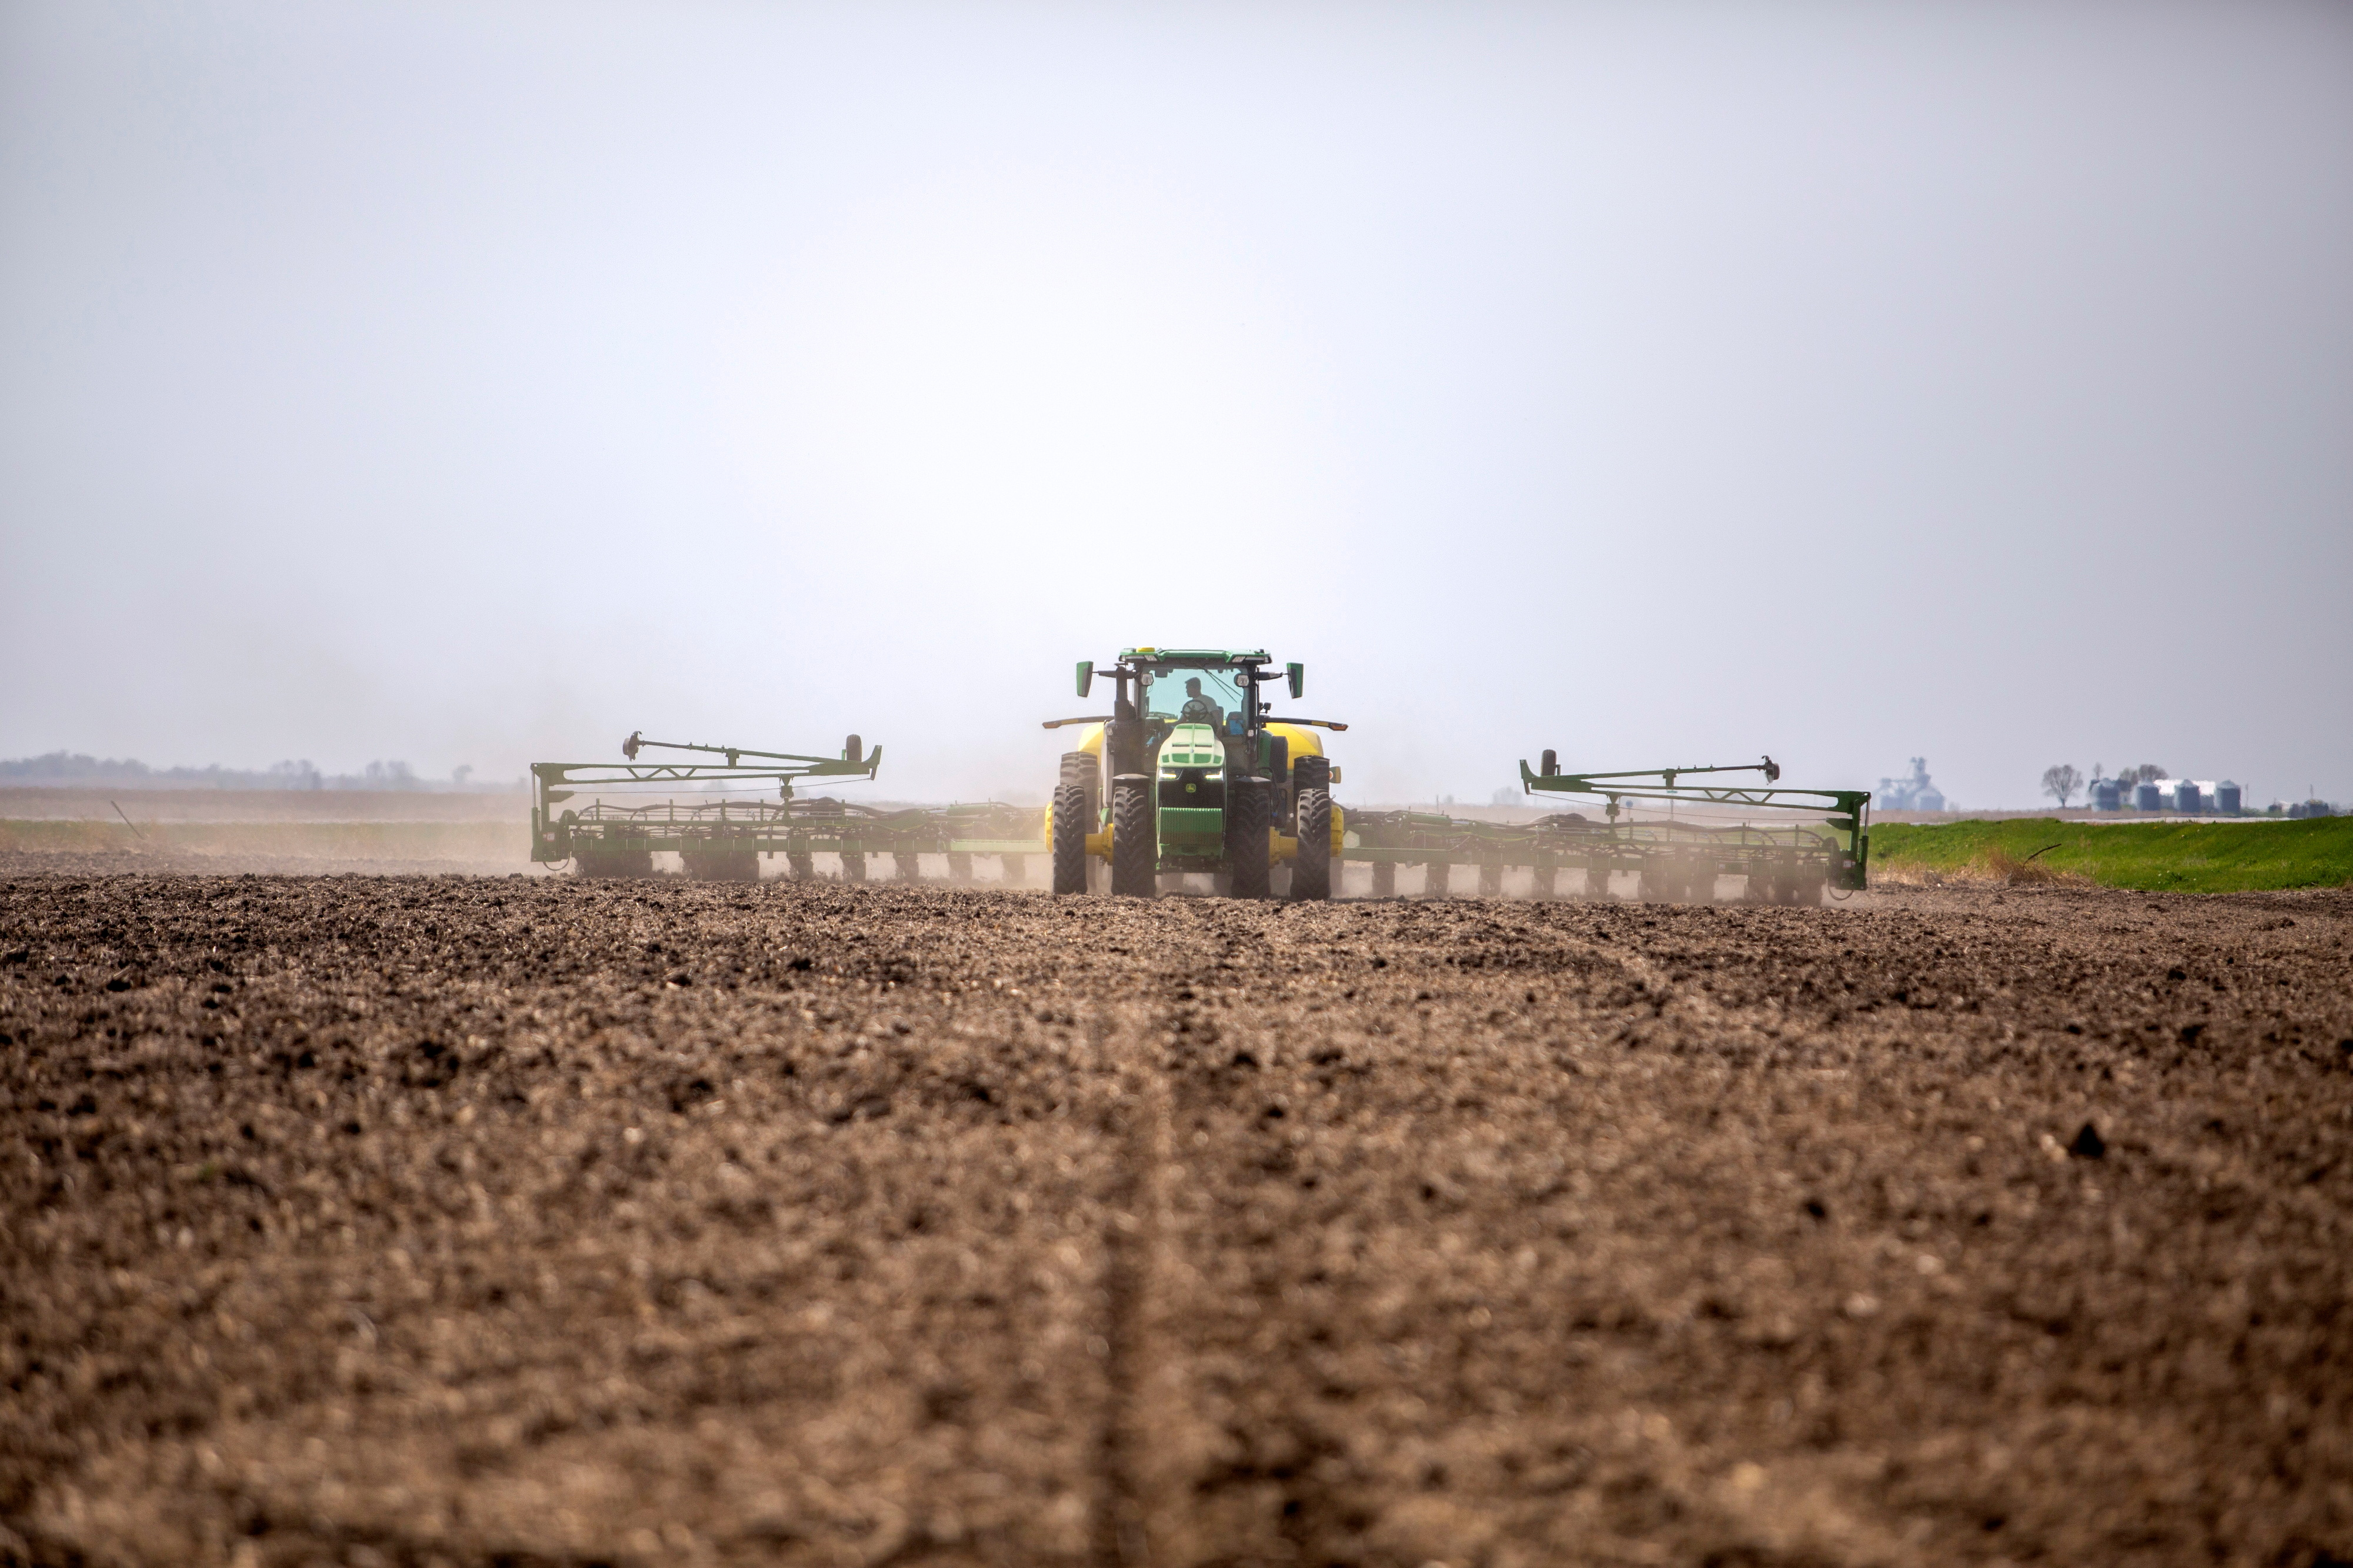 Chris Hays drives a new tractor and planter during spring planting at their farm in Malvern, Iowa, U.S., April 27, 2021. Picture taken April 27, 2021.   REUTERS/Rachel Mummey